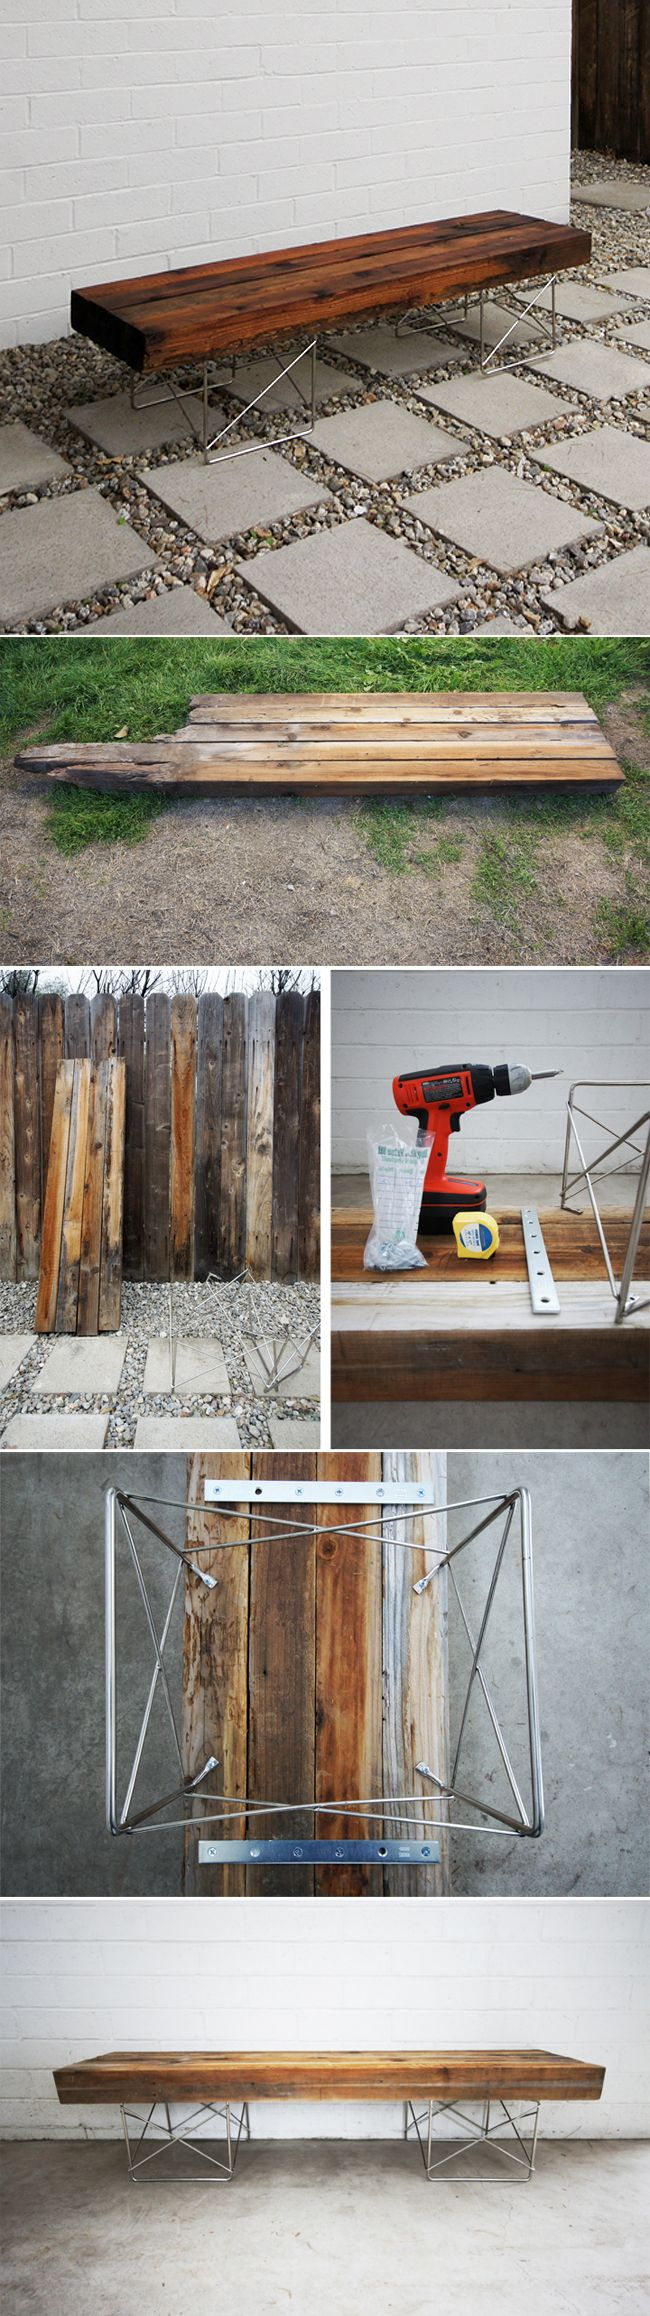 DIY : Midcentury bench made from reclaimed wood